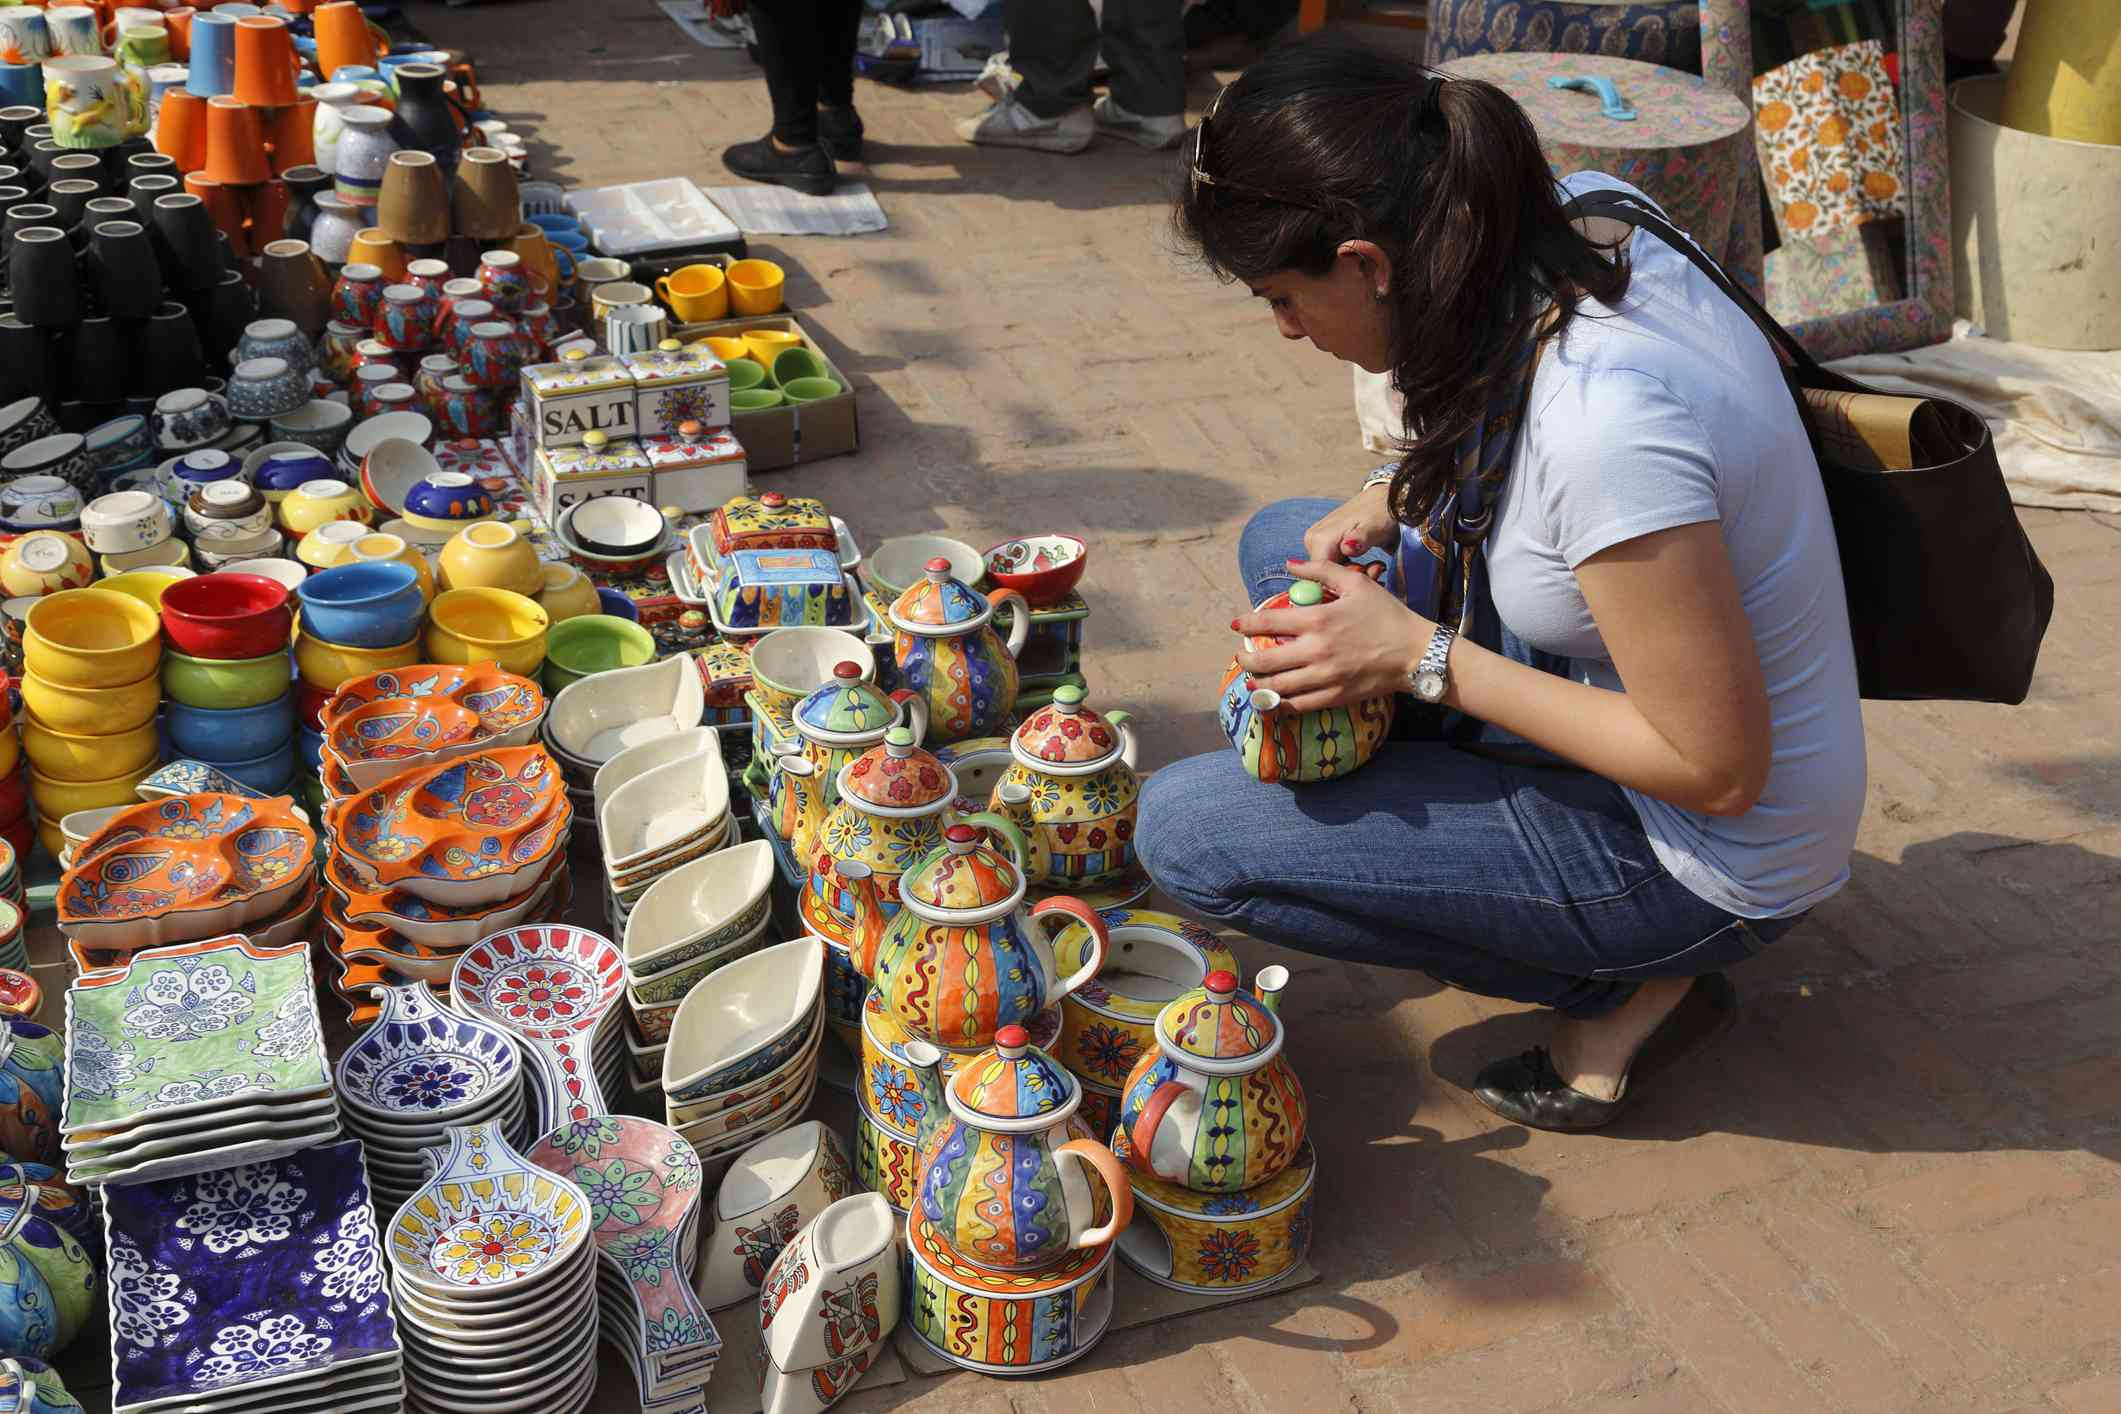 Young woman shopping for crockery and tea pots at Dilli Haat crafts bazaar.